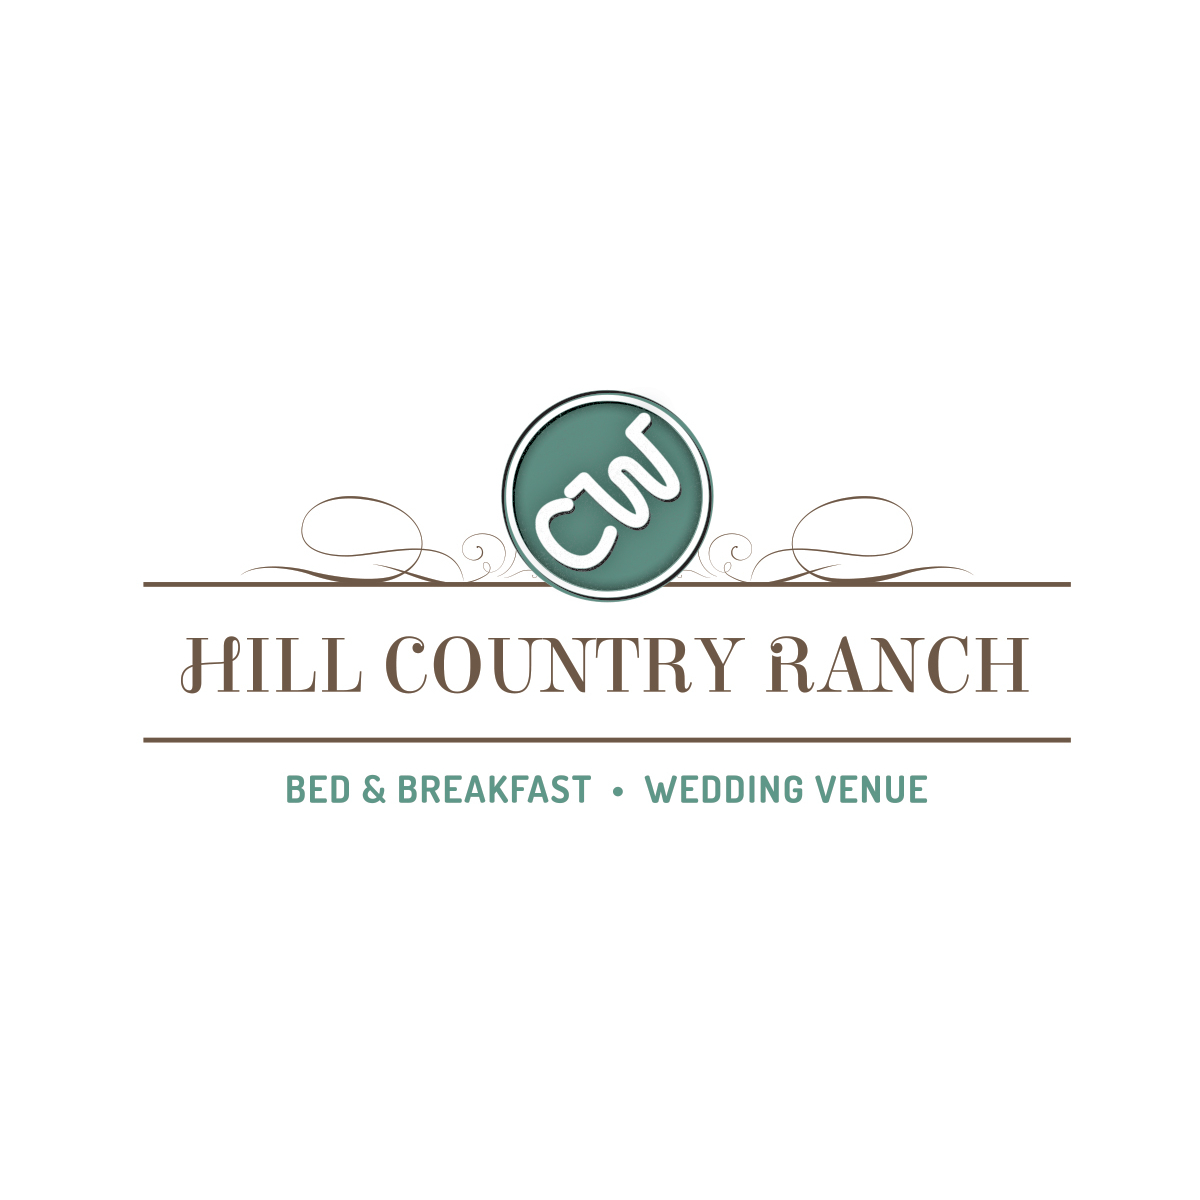 CW Hill Country Ranch Wedding Venue and B&B